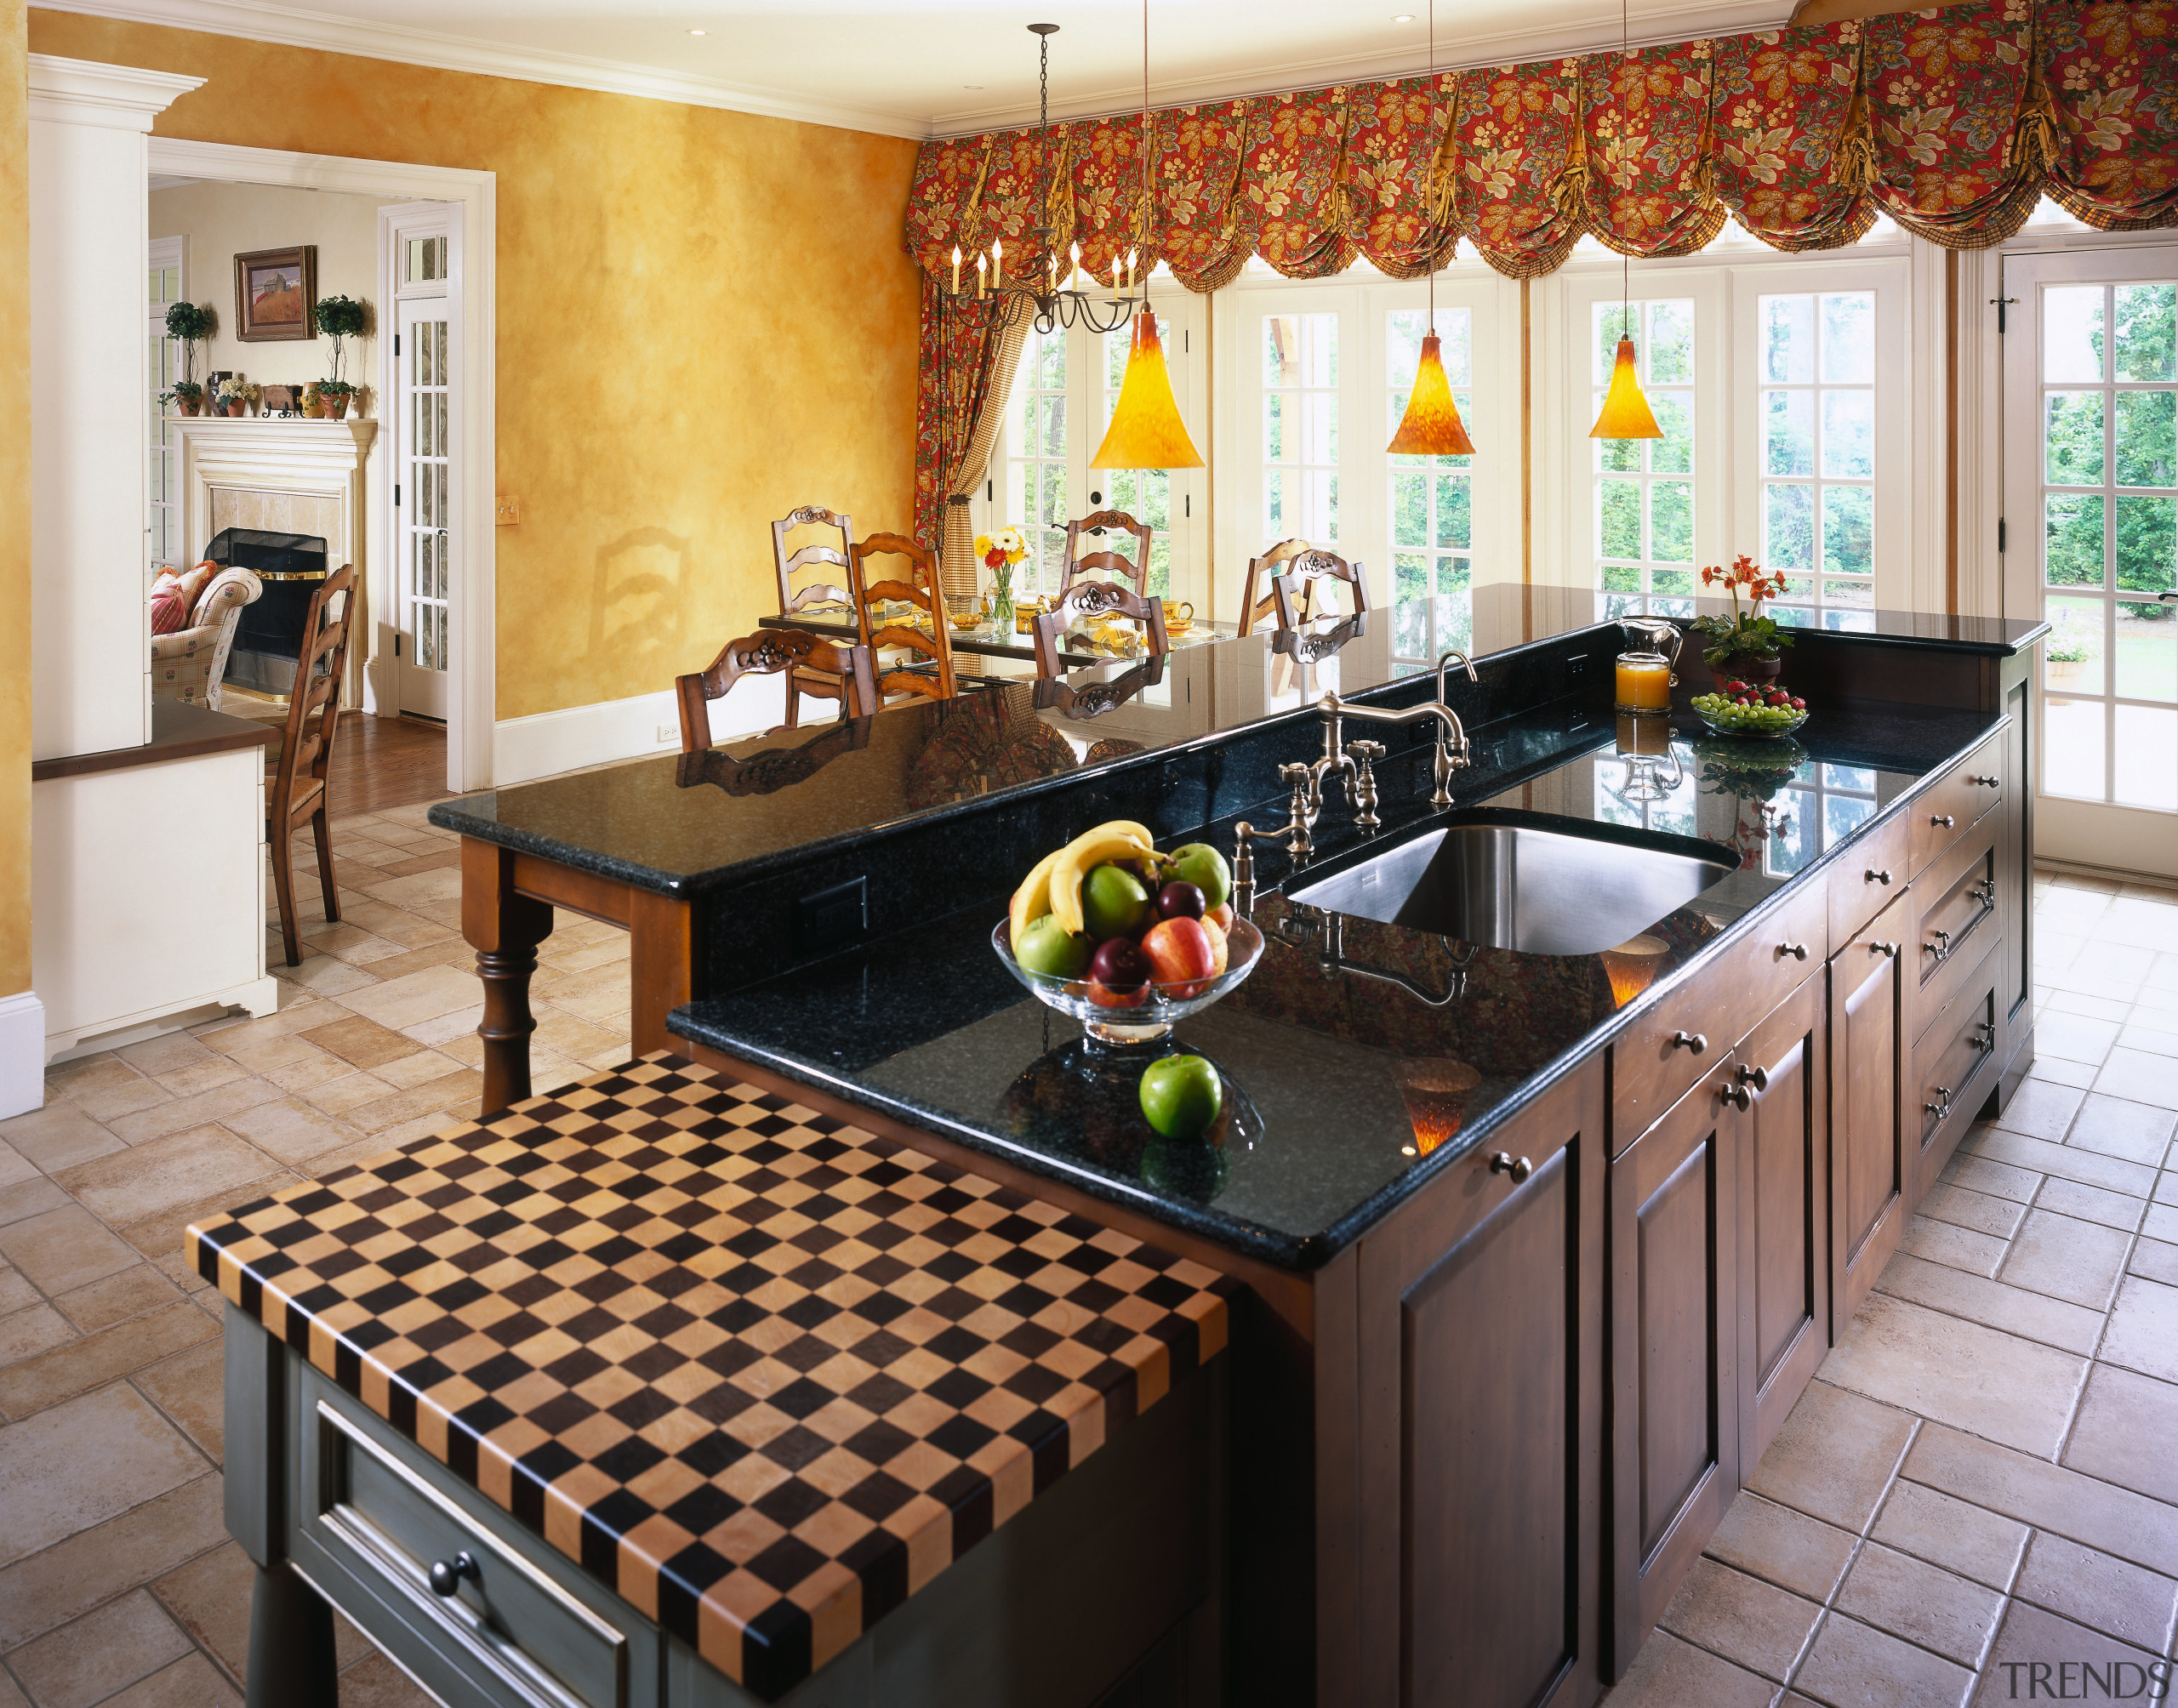 View of this traditional kitchen - View of countertop, interior design, kitchen, real estate, white